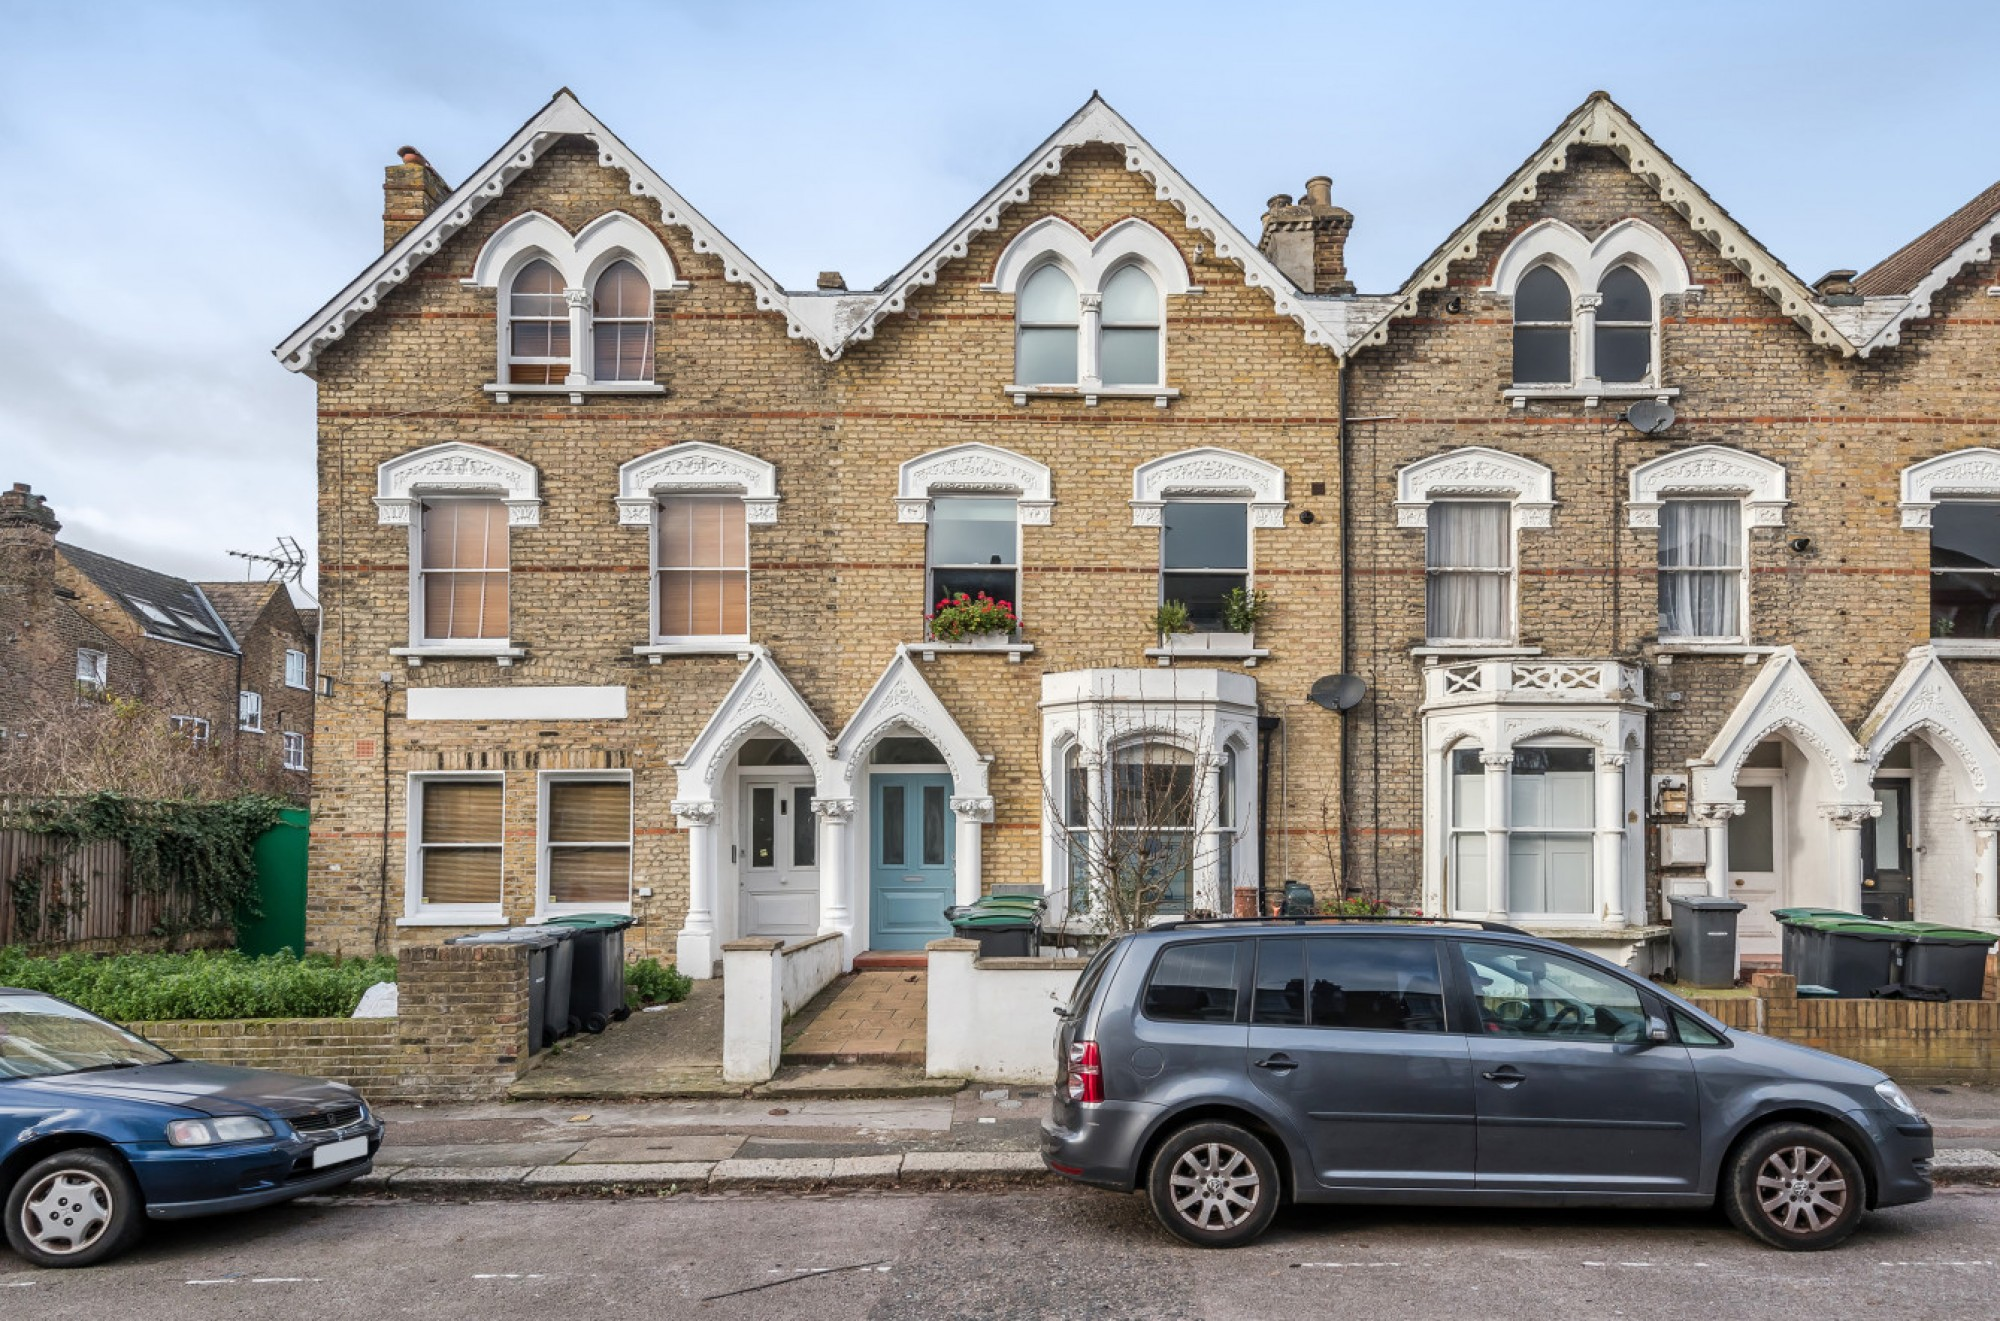 Images for Lorne Road N4 3RU EAID:931013c273837aec744cf2e7889cb460 BID:1